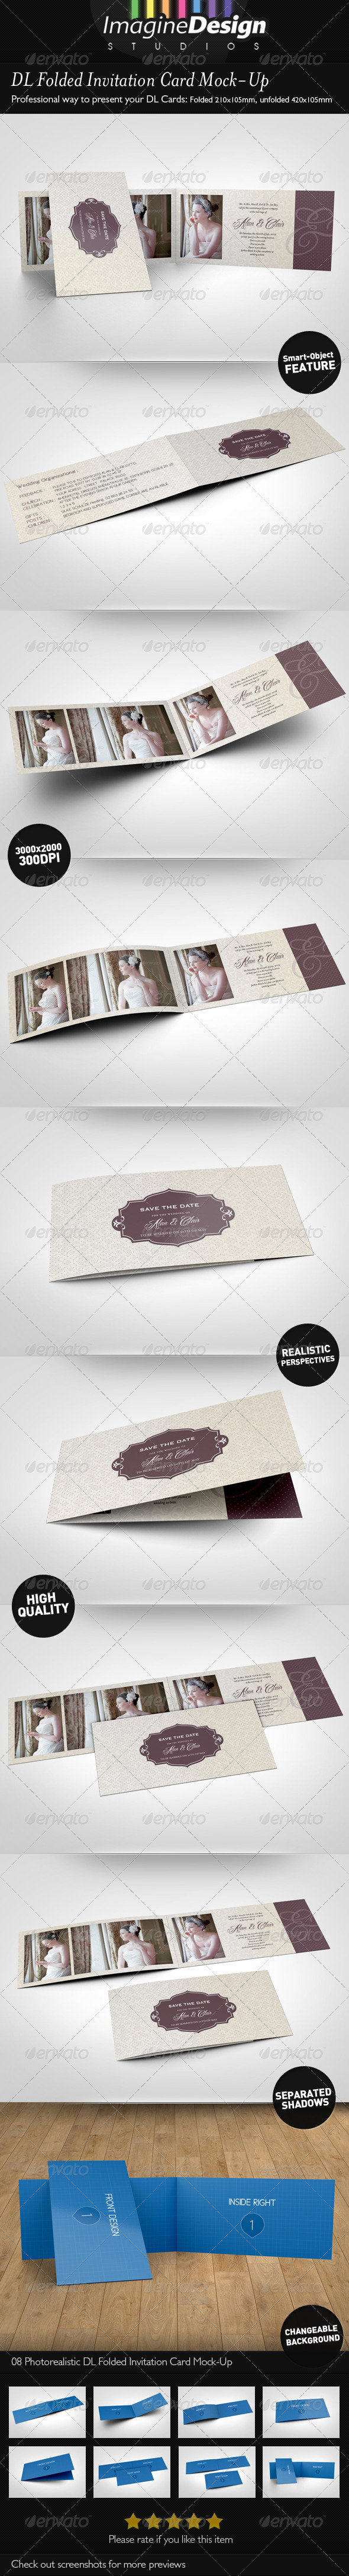 DL Folded Invitation Card Mock-Up - Print Product Mock-Ups